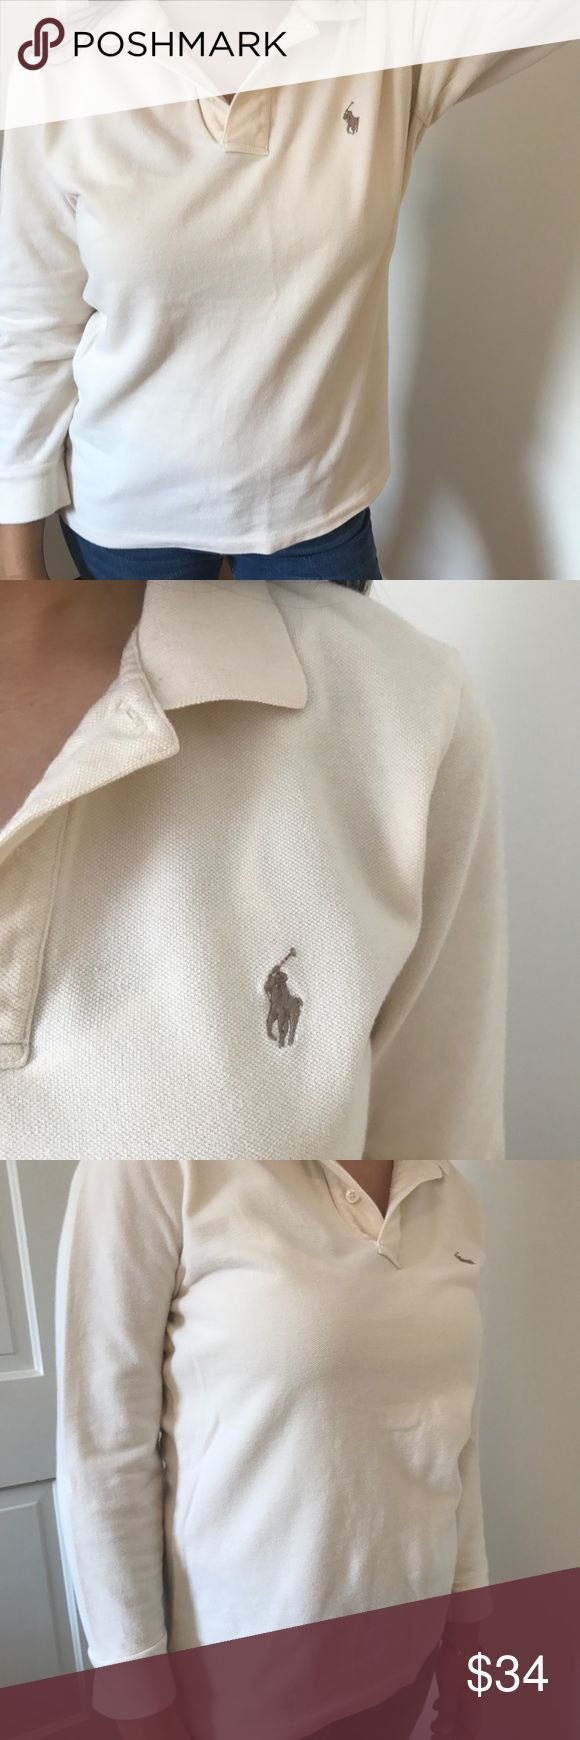 Polo tee 3/4 sleeve This chic and stylish polo shirt is perfect for a casual day. It's cream colored with a detailed infamous brown polo logo. Fits a size small although the tag says large. and the sleeves aren't super long( as seen in the photo) Make an offer! Ralph Lauren Tops Tees - Long Sleeve